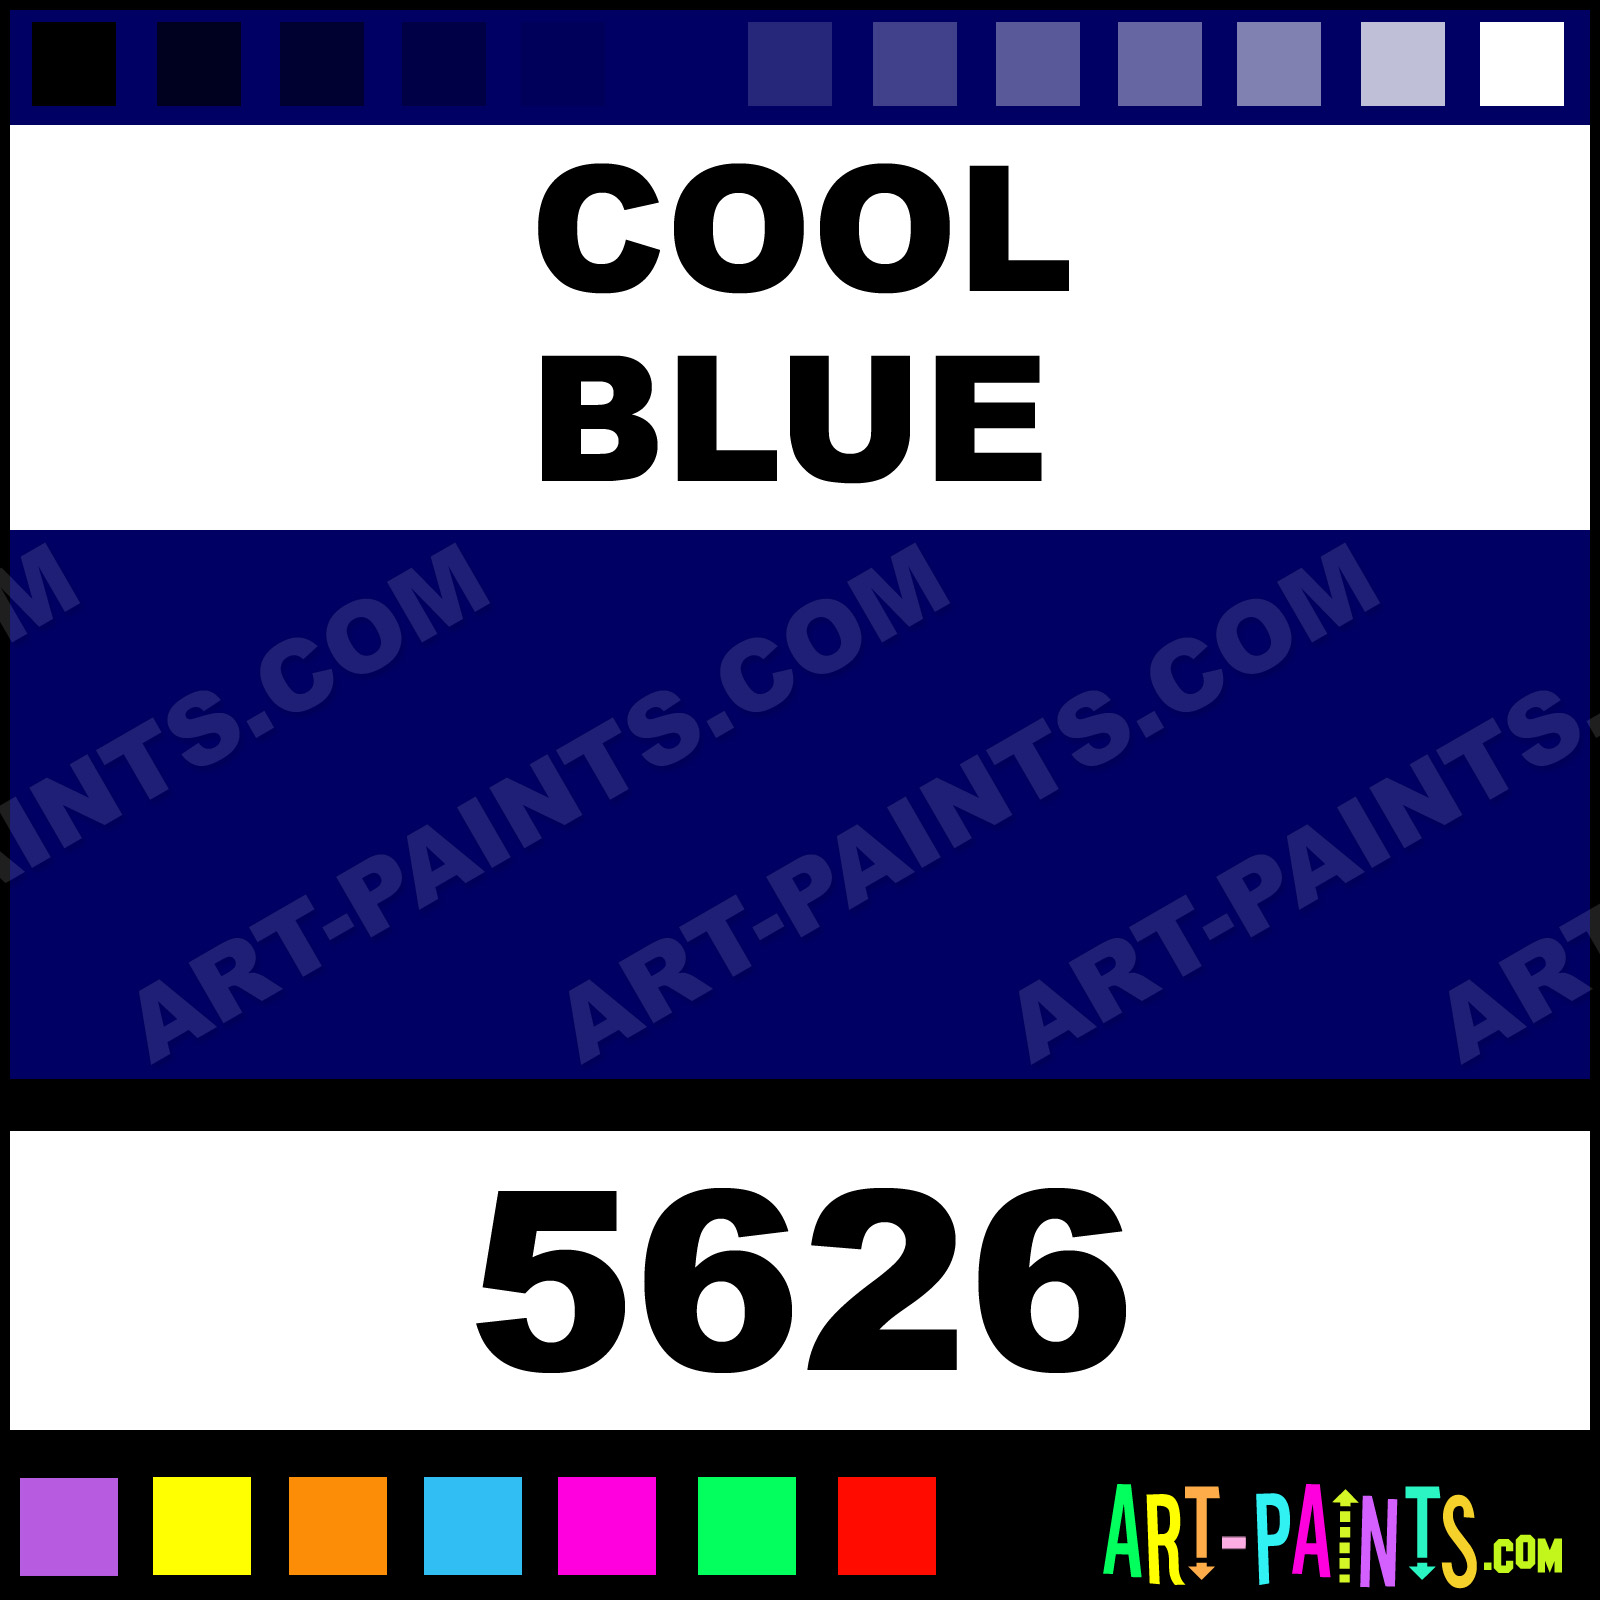 Cool Blue Paint Cool Blue School Acrylic Paints 5626 Cool Blue Paint Cool